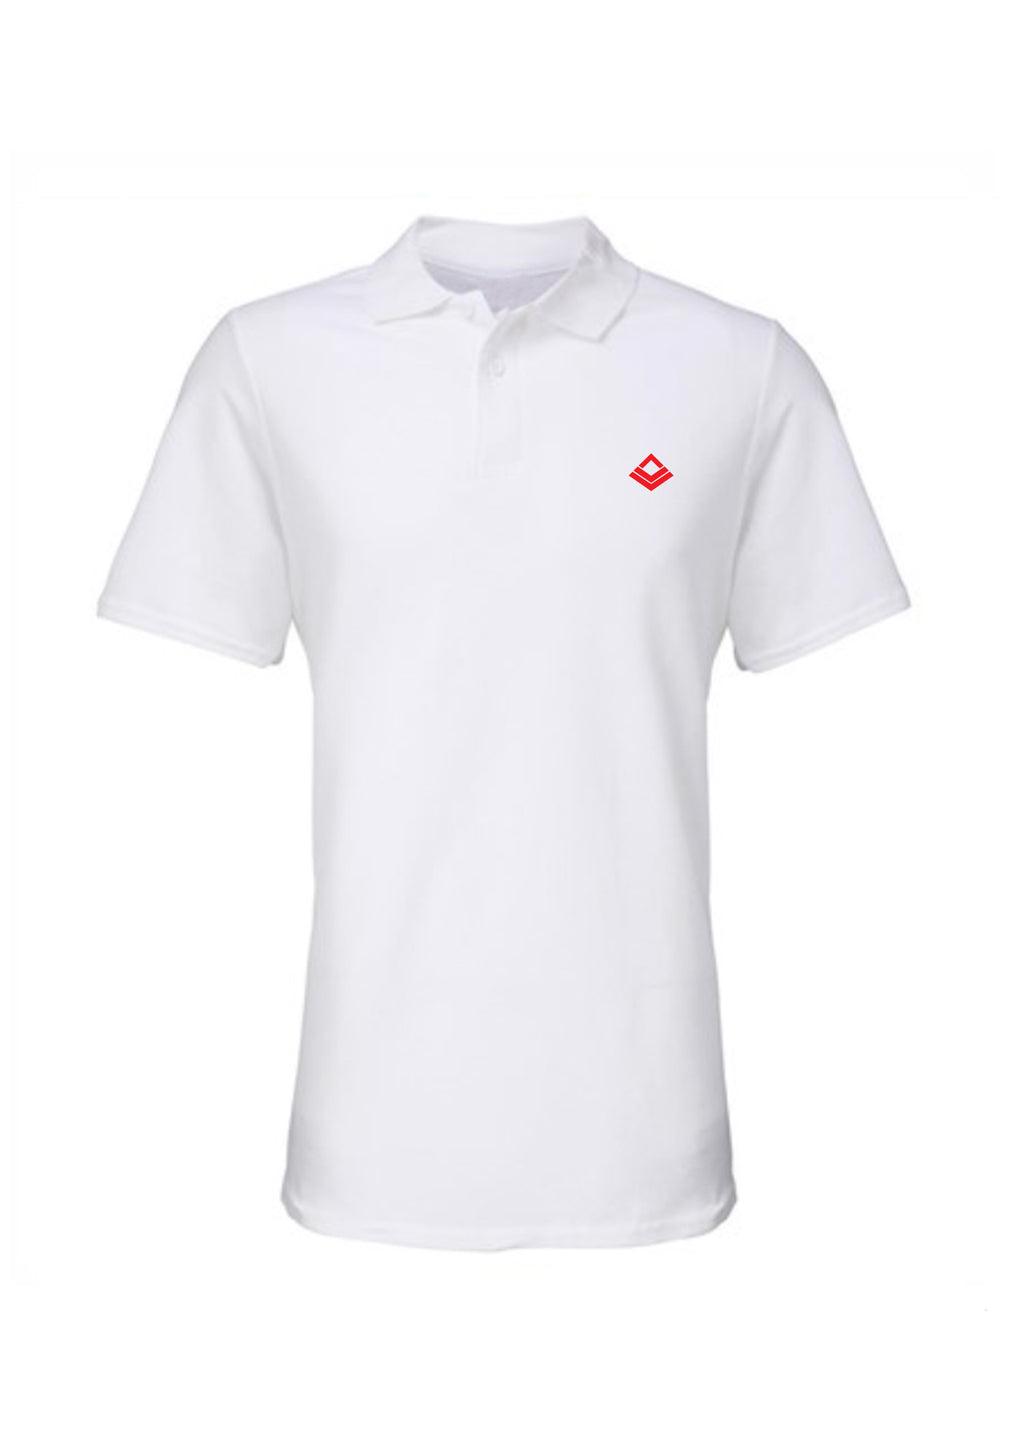 Swaggerlicious White Simple Polo Shirt with Red Logo